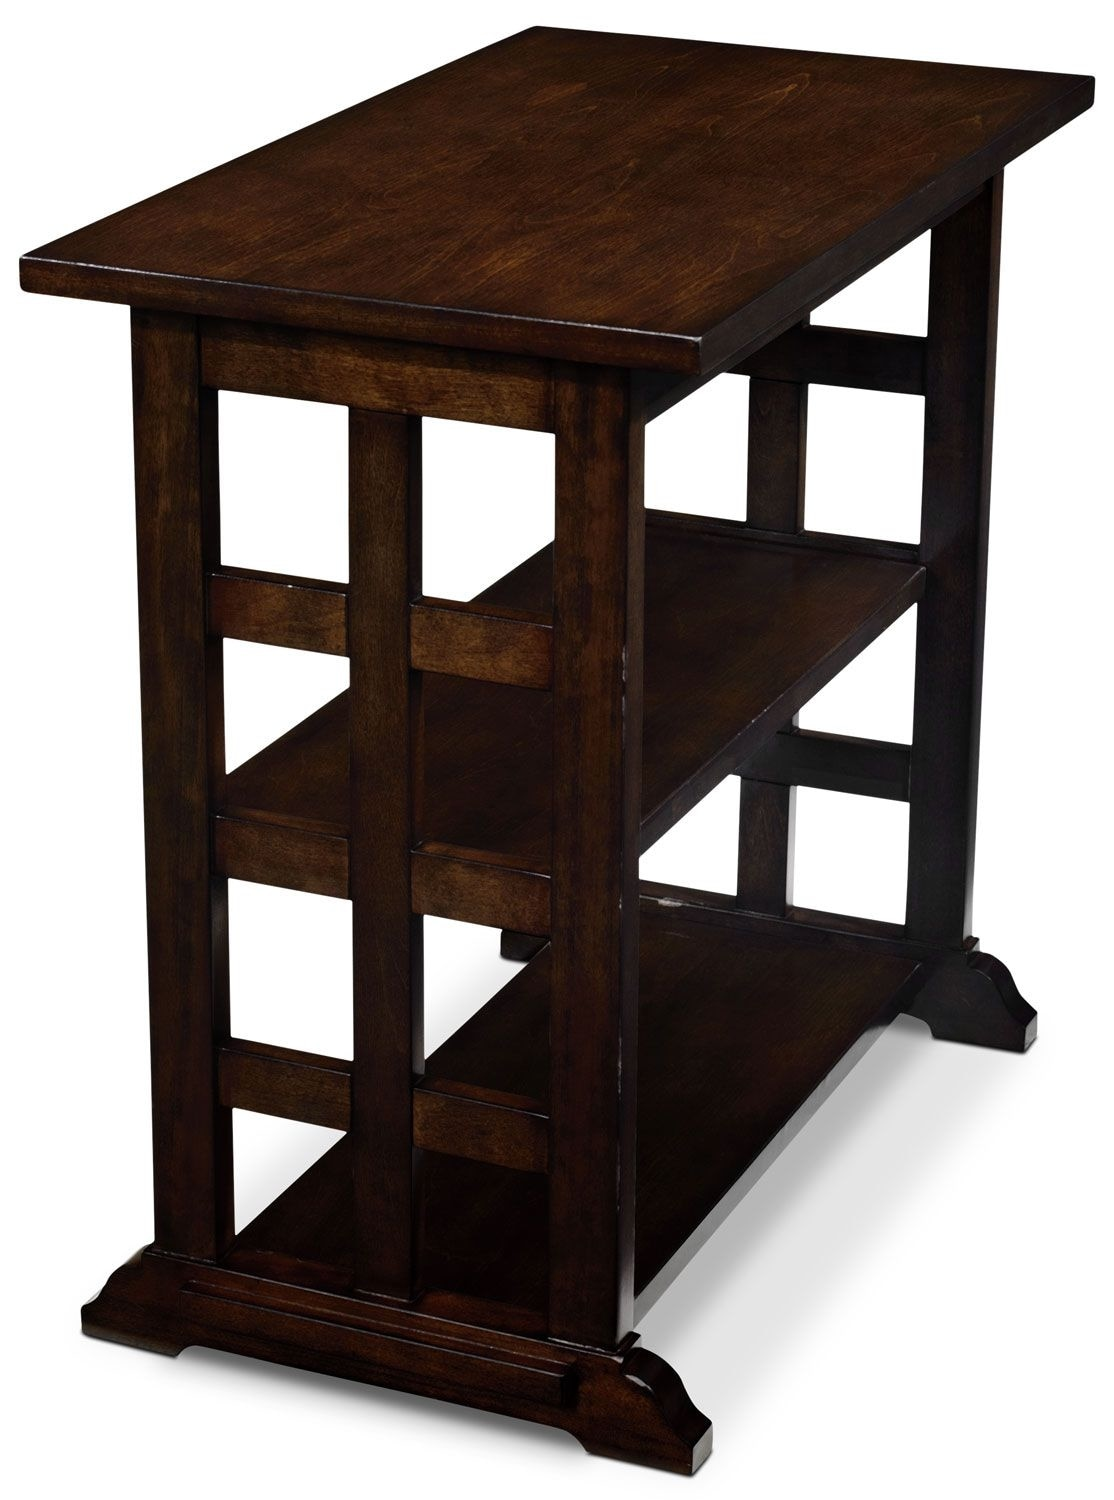 Accent and Occasional Furniture - Gander Accent Table - Dark Brown